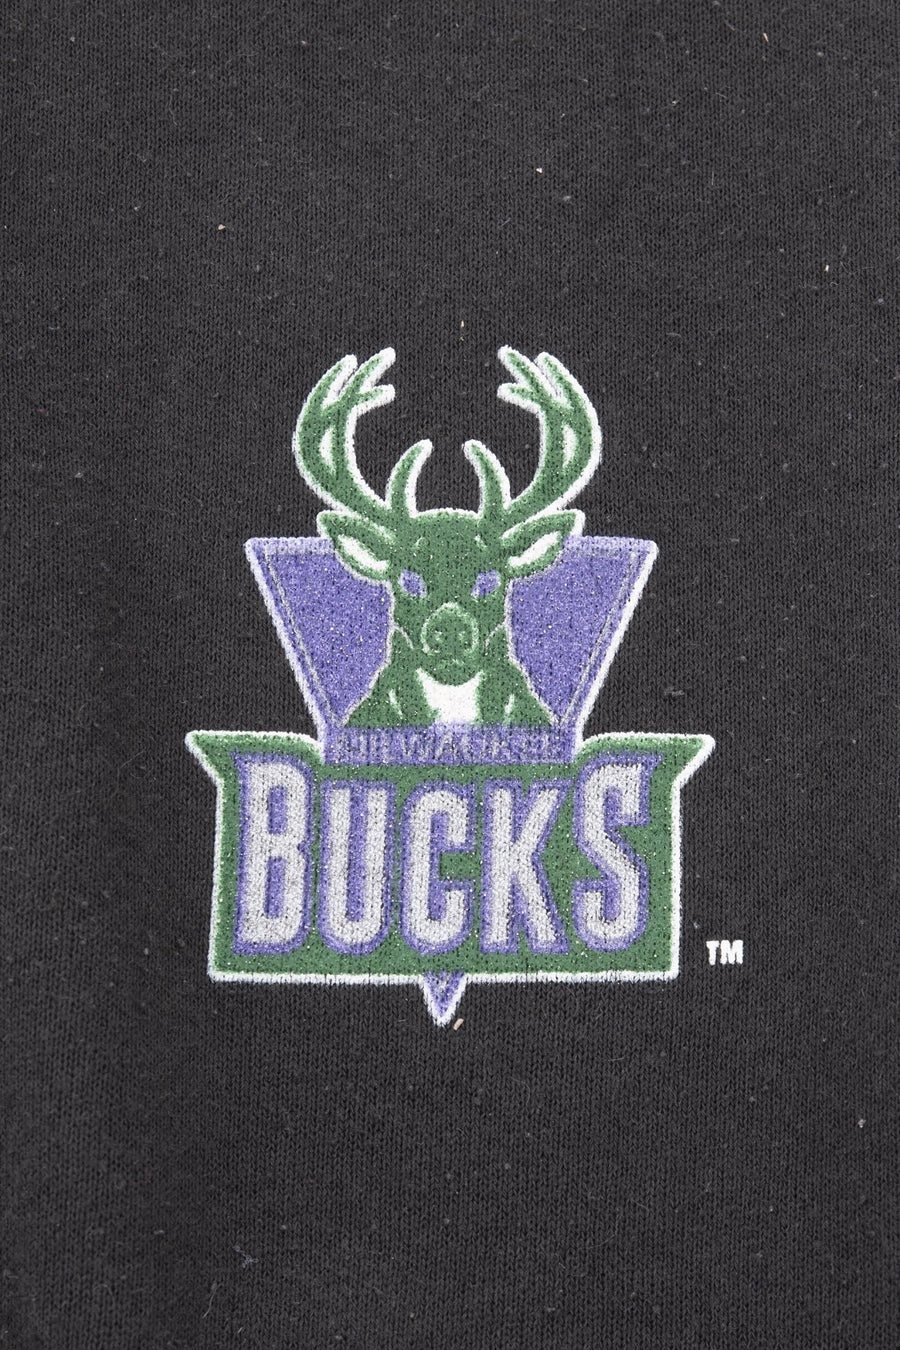 Crewneck Milwaukee Bucks 90' - WASTED PARIS